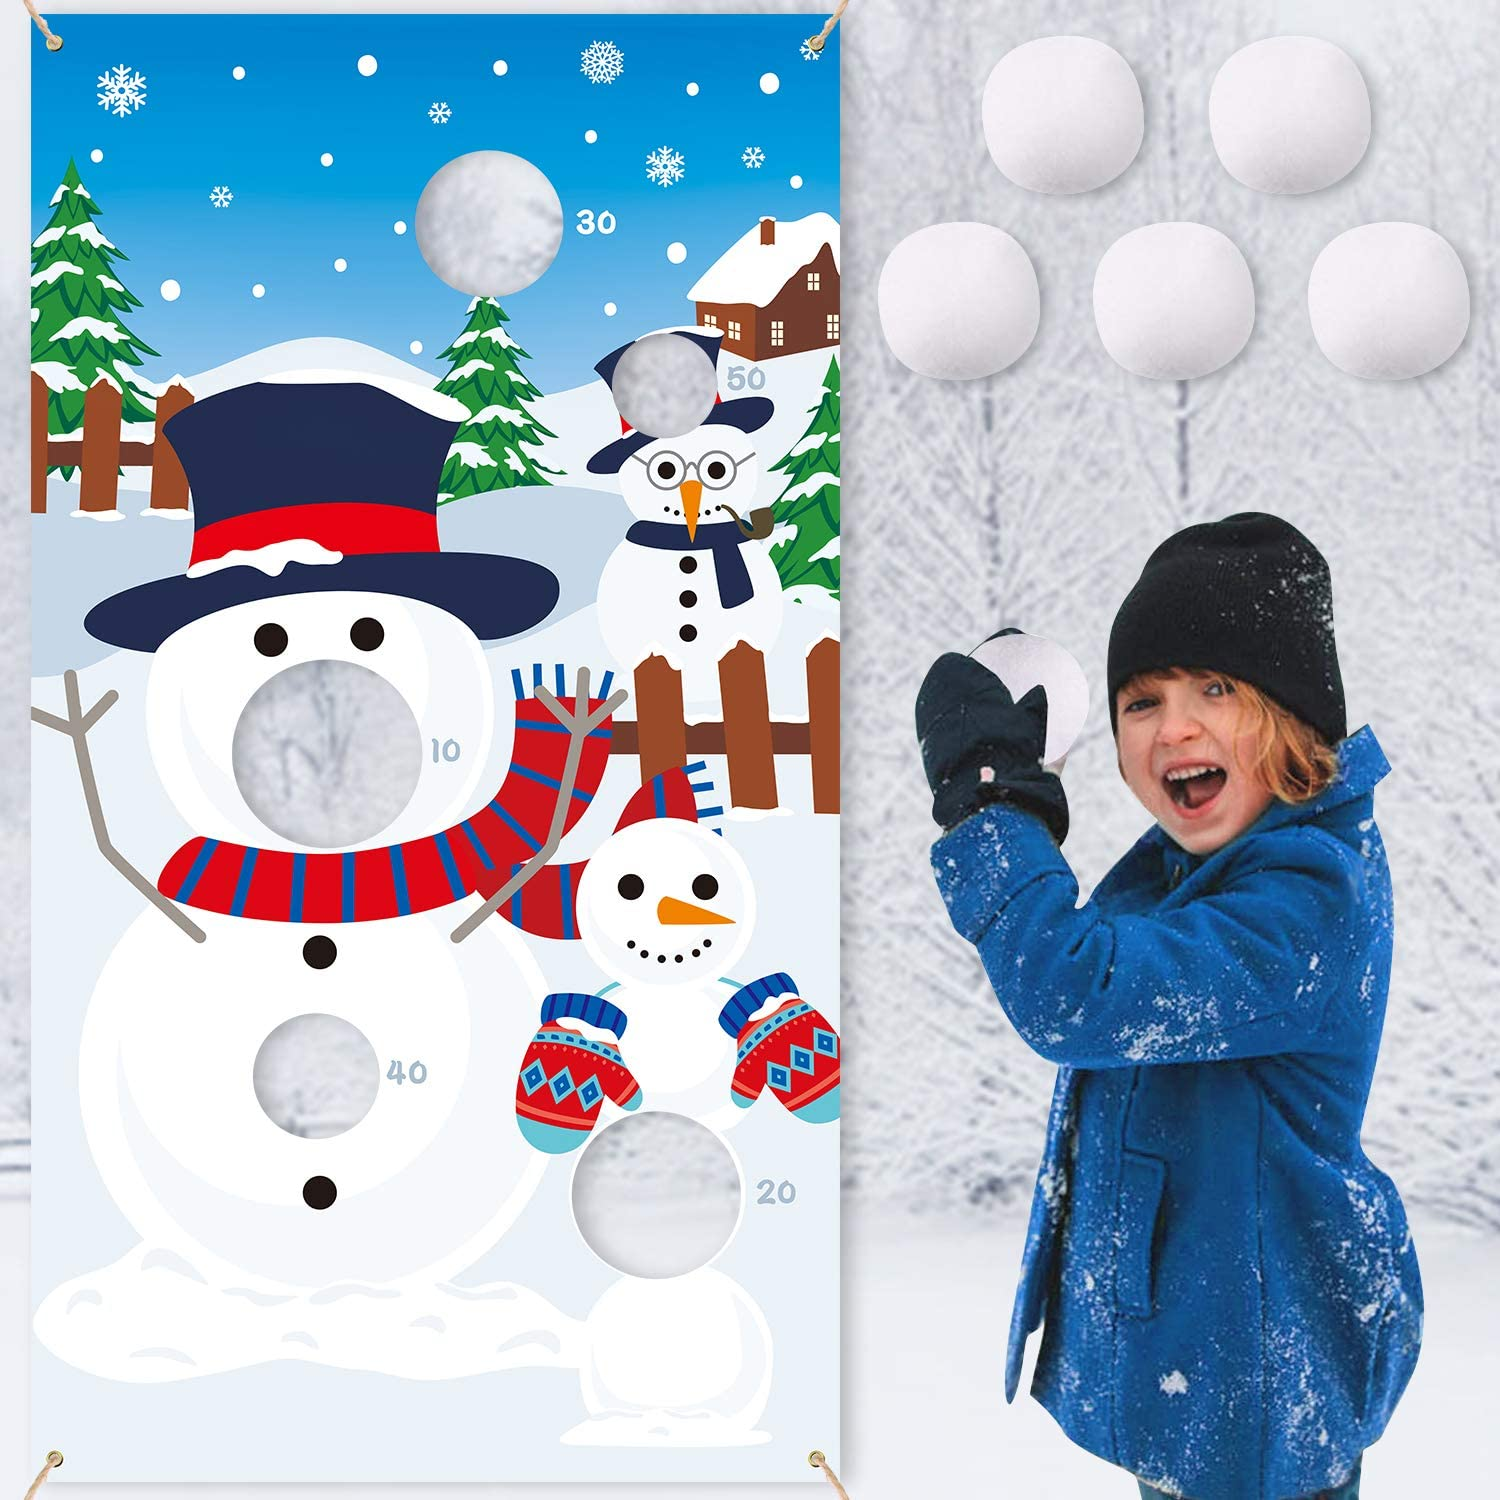 CiyvoLyeen Snowman Toss Games Banner, Winter Christmas Holiday Party Cornhole Game with 5 Snowballs for Kids Adults Family Gathering Indoor Outdoor Frozen Party Supplies 71vE6gBpv1L